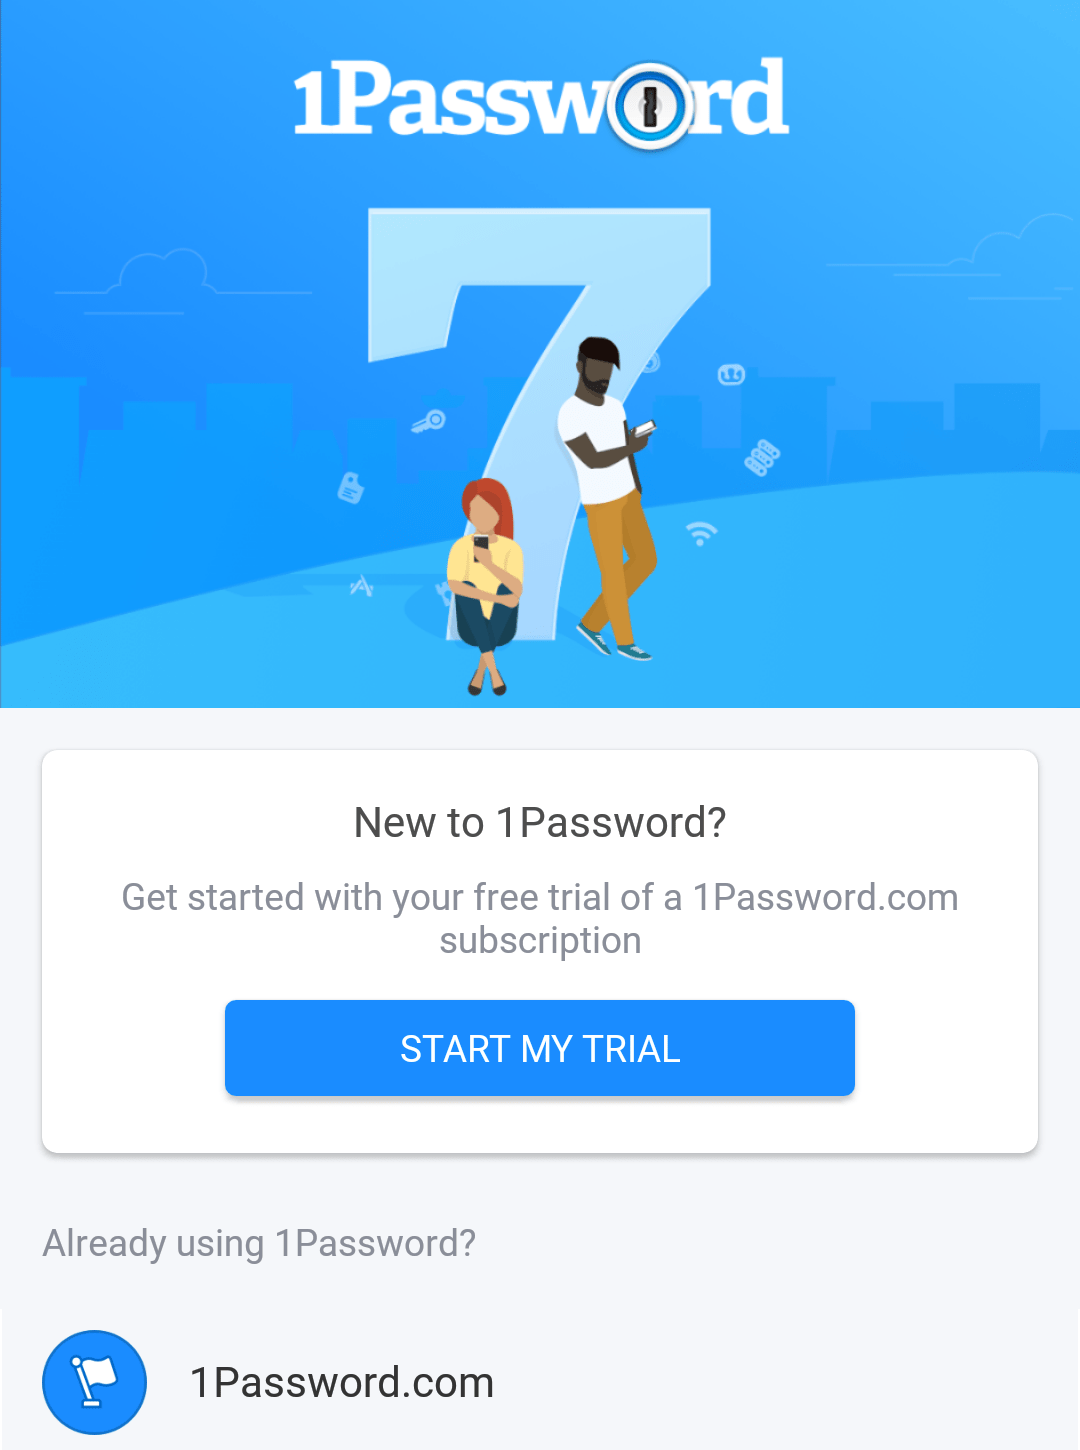 The welcome screen you'll see when you first open 1Password for Android